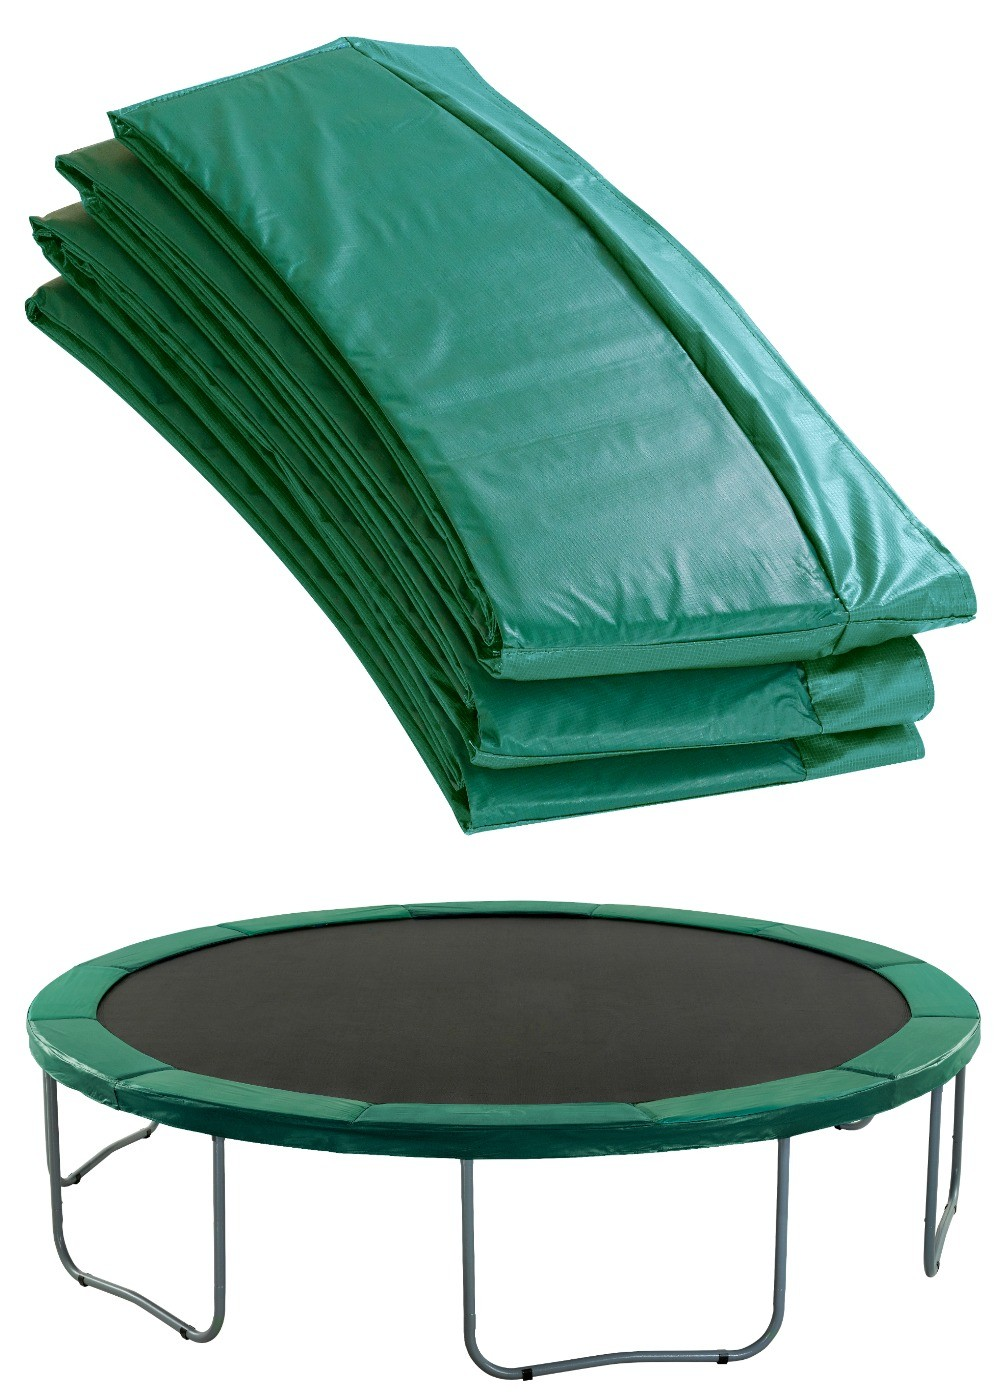 Super Trampoline Replacement Safety Pad (Spring Cover) Fits for 10 FT. Round Frames - Green